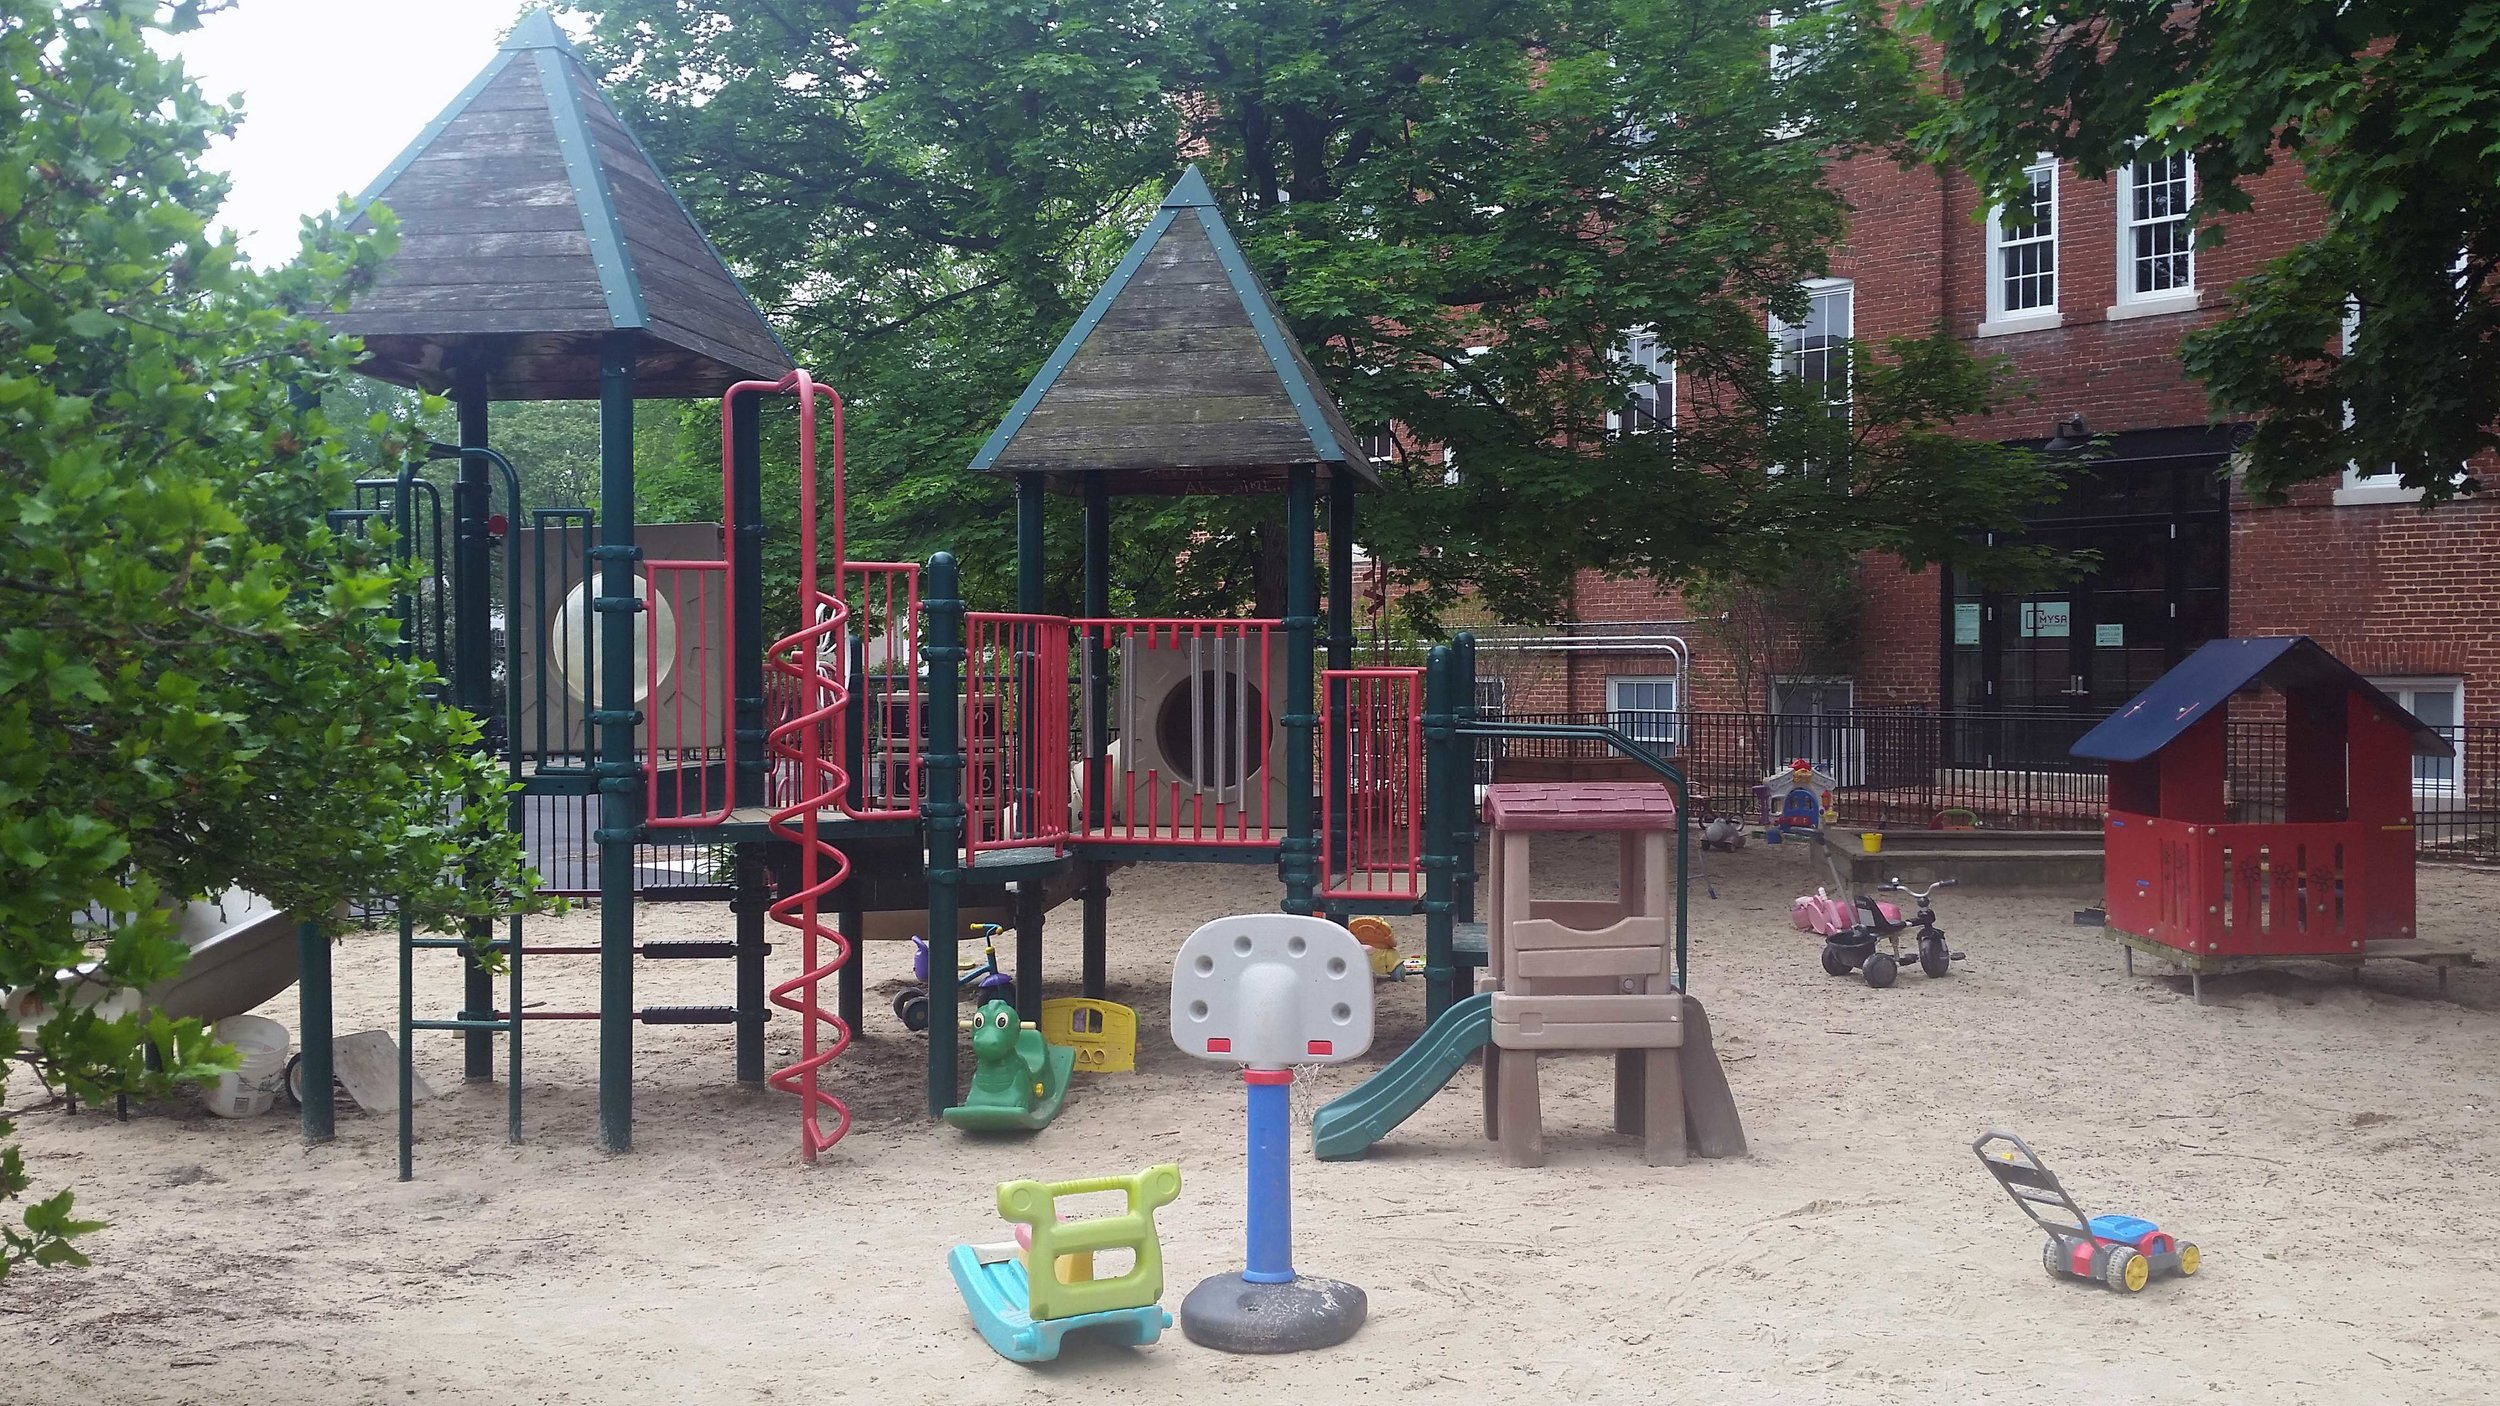 parents and minders can watch their kids from the tot lot's picnic benches.